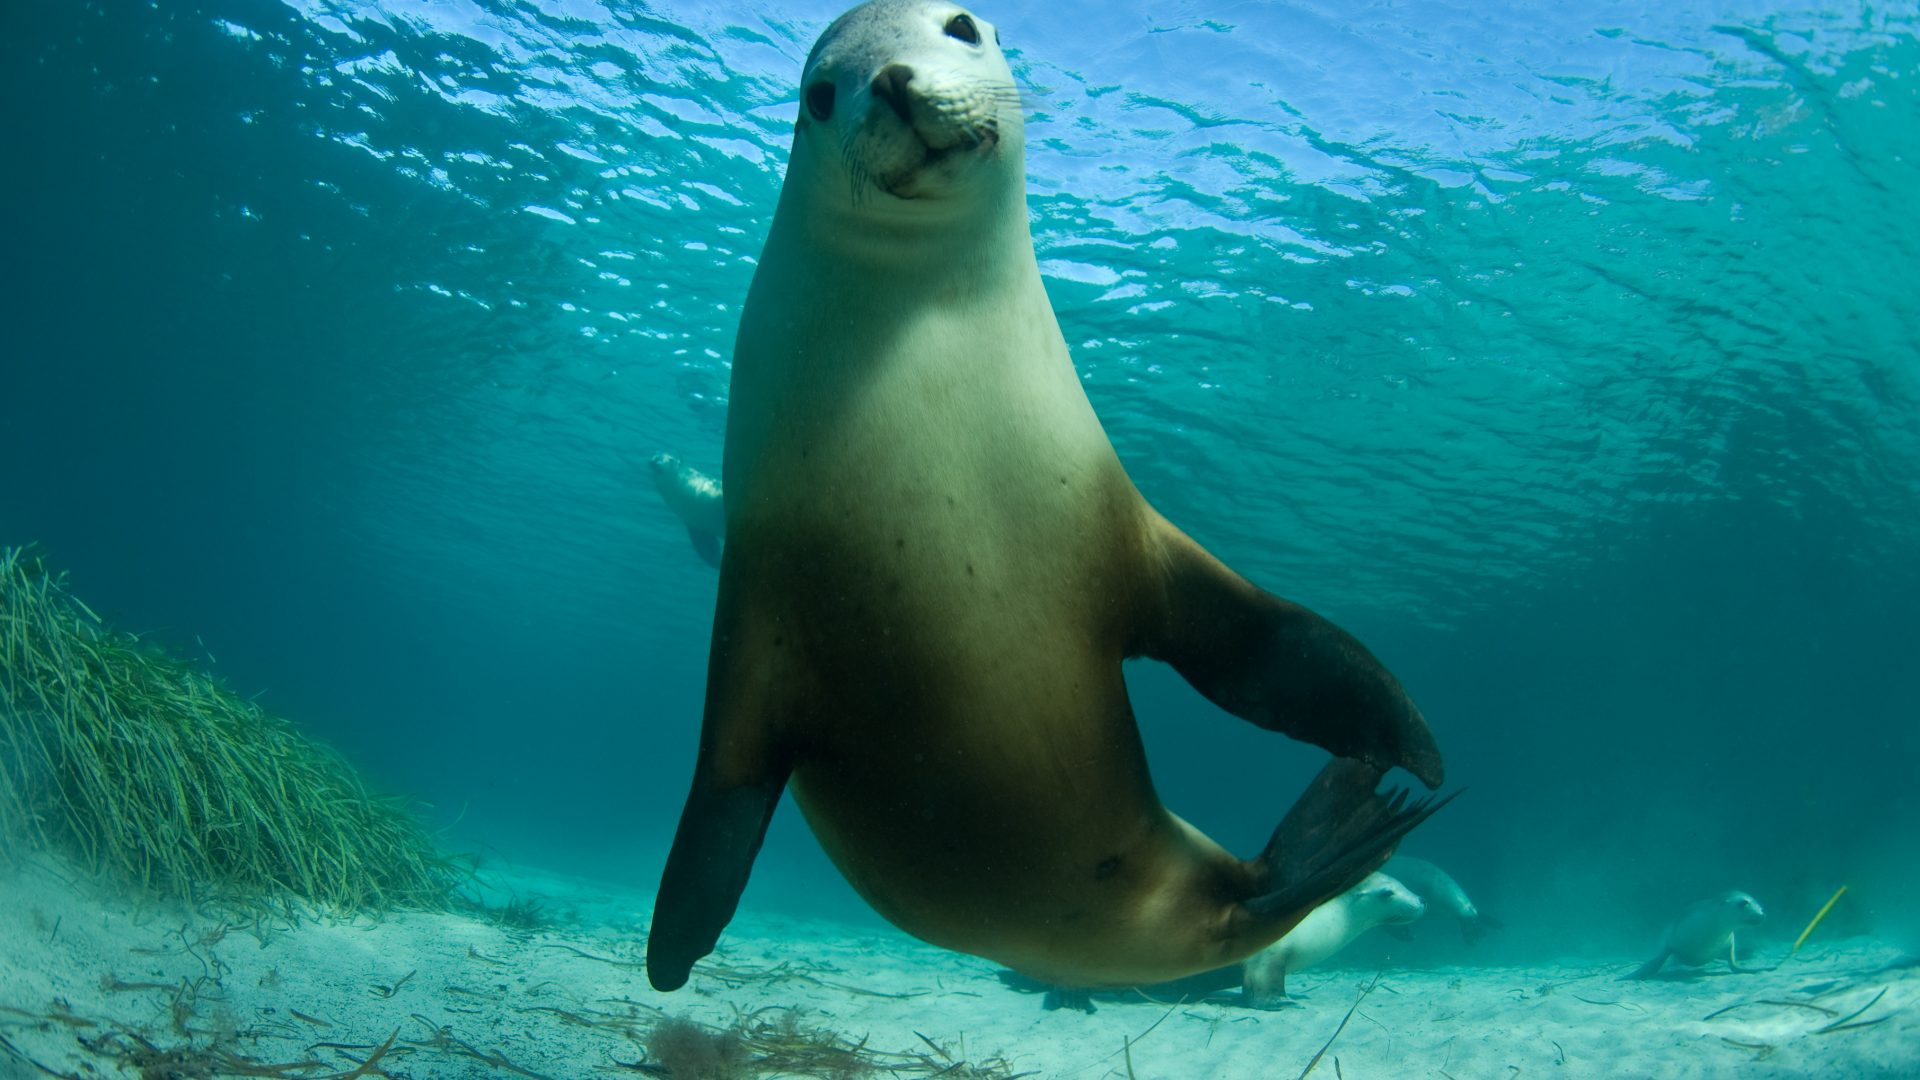 An Australian sea lion looks at the camera.